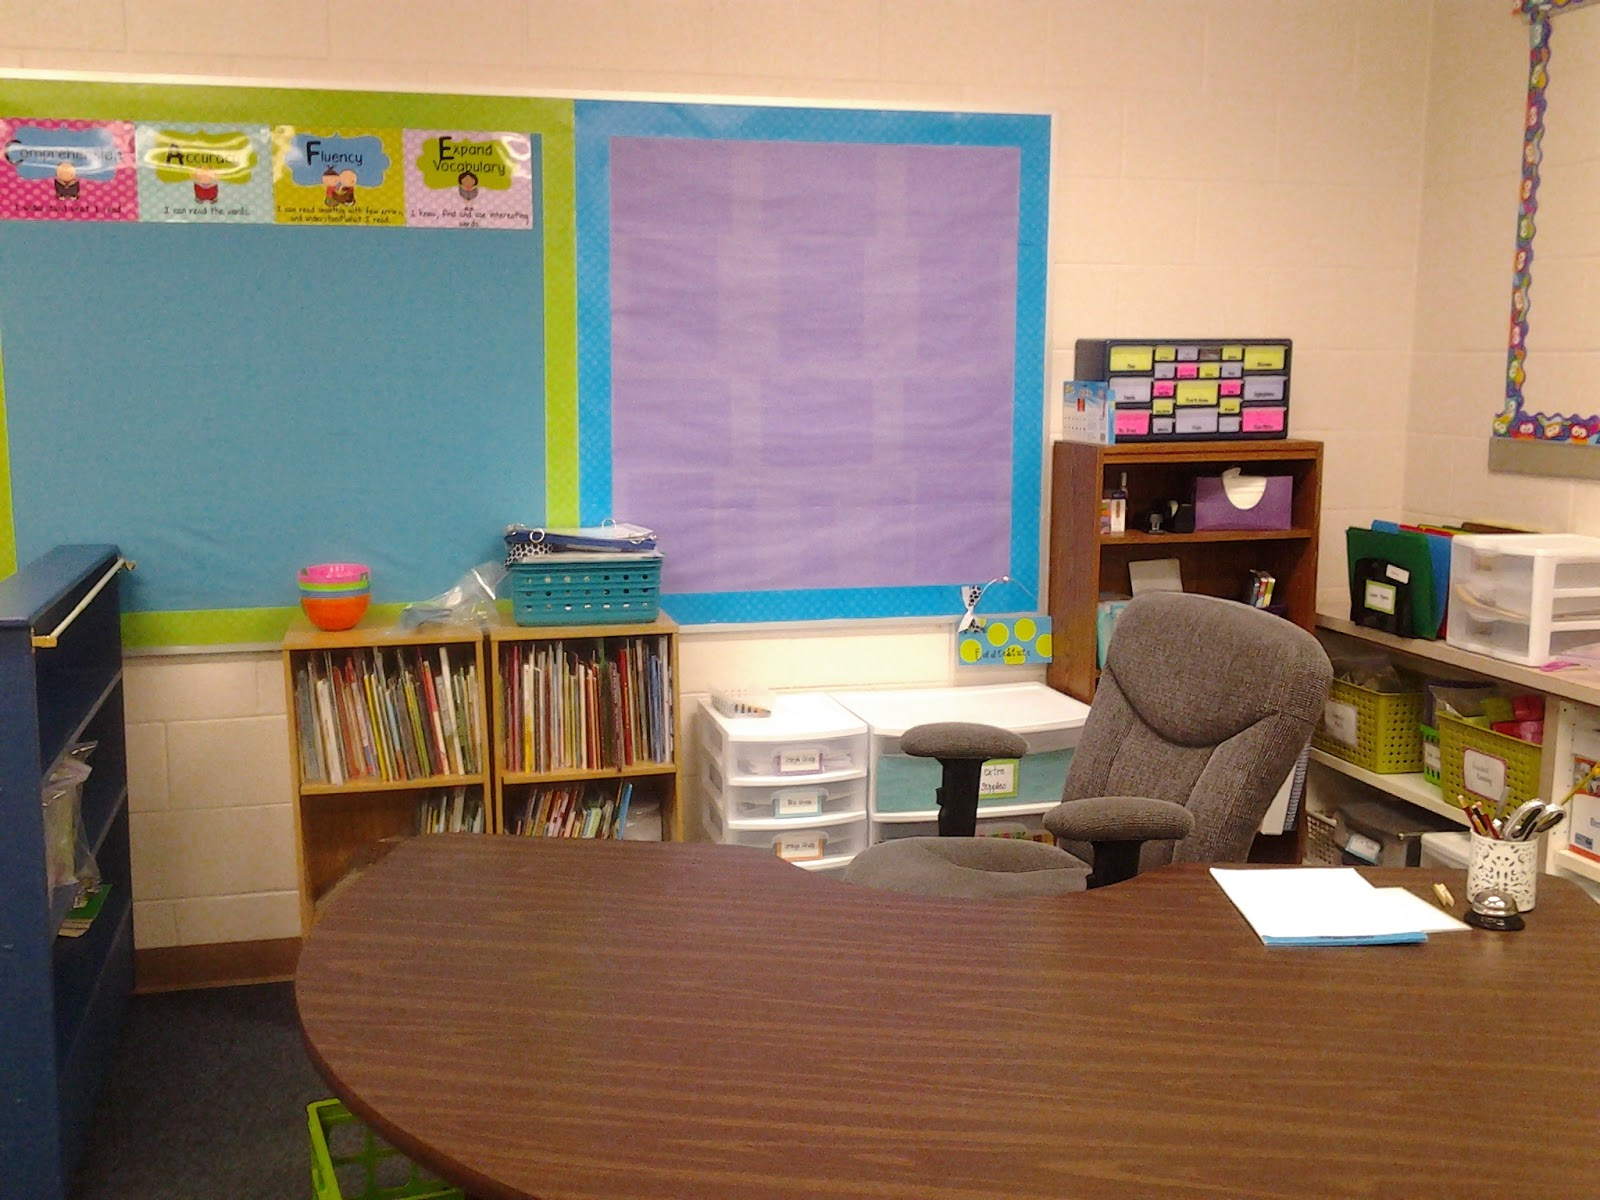 Classroom Design For Grade One : Spotted in first grade classroom design day and